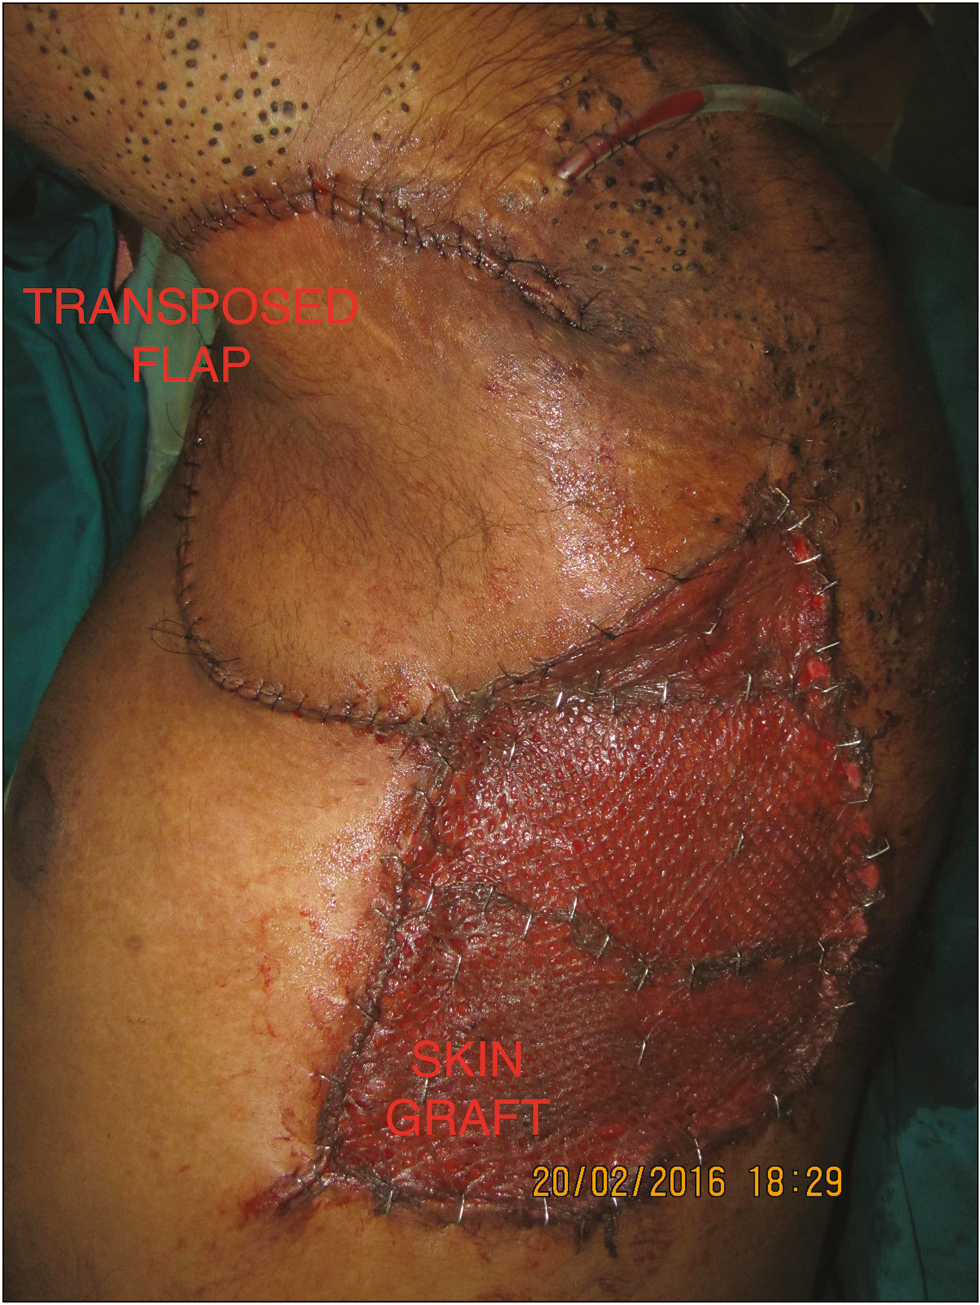 Figure 7: Axillary defect was resurfaced with a transposition flap from left parascapular region and the donor site skin grafted